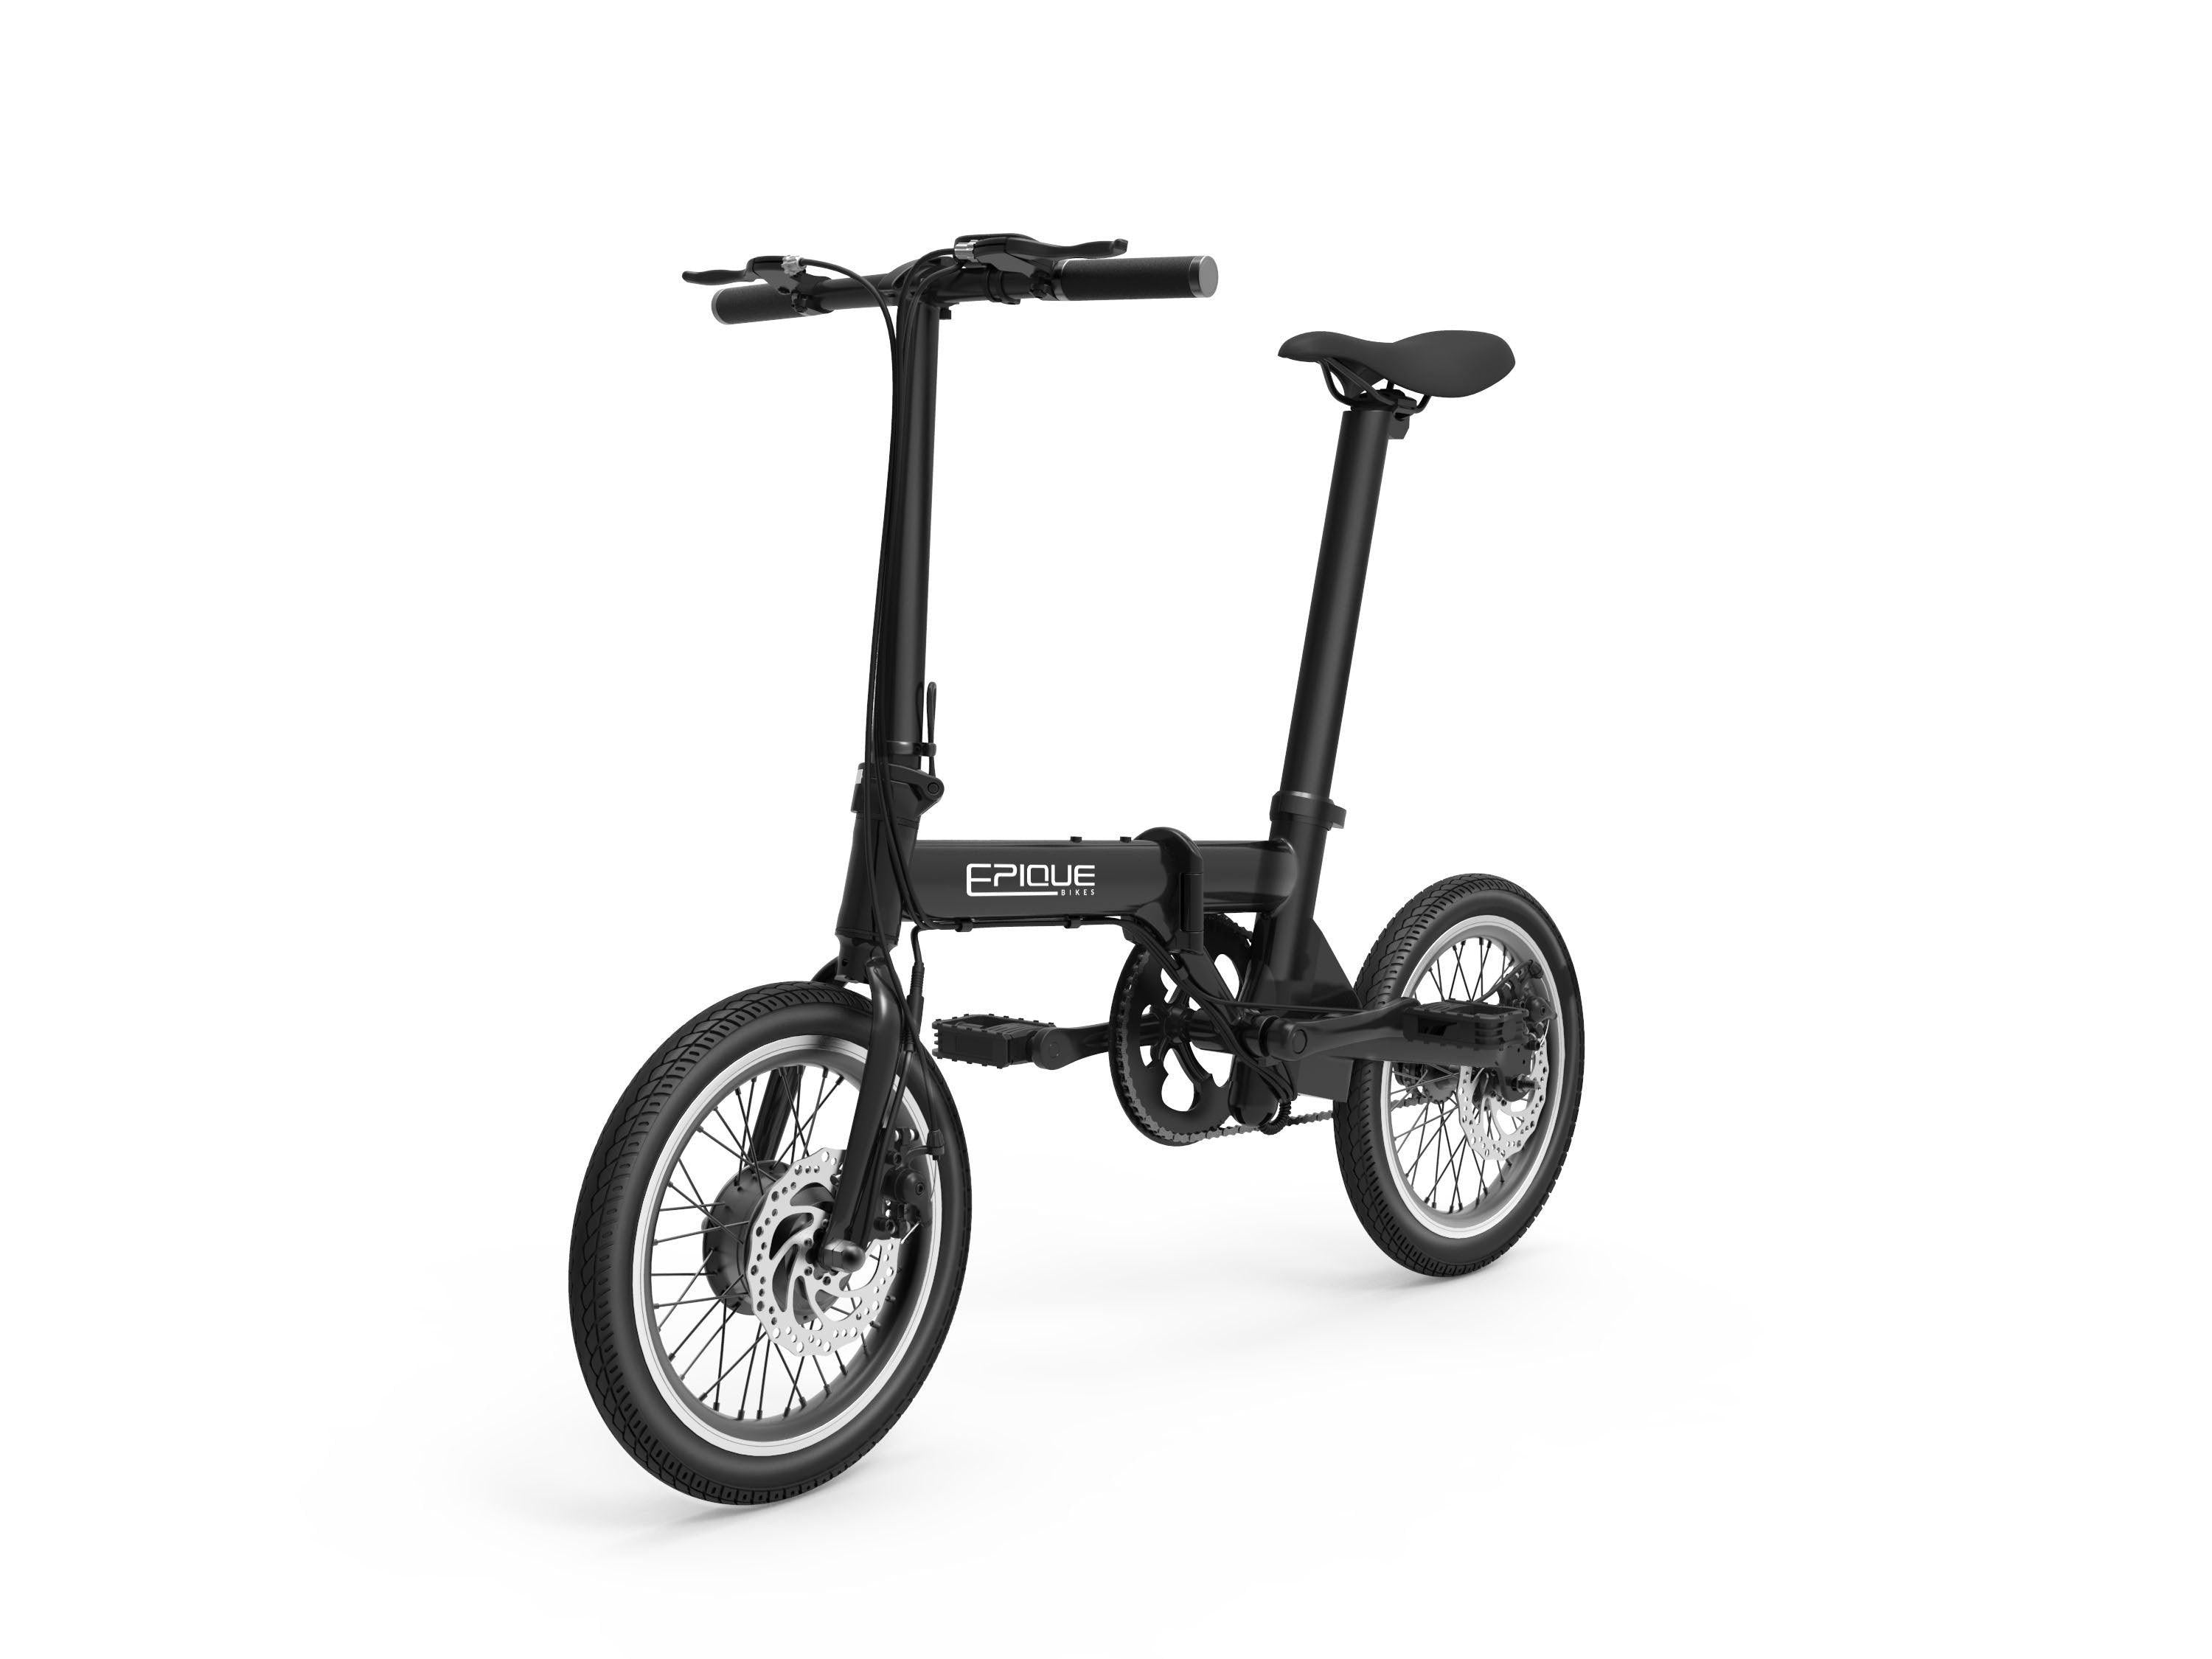 62f5c83ad66a89 EPIQUE City Electric Bicycle - Scootology - Malaysia s Best Electric  Scooter ...